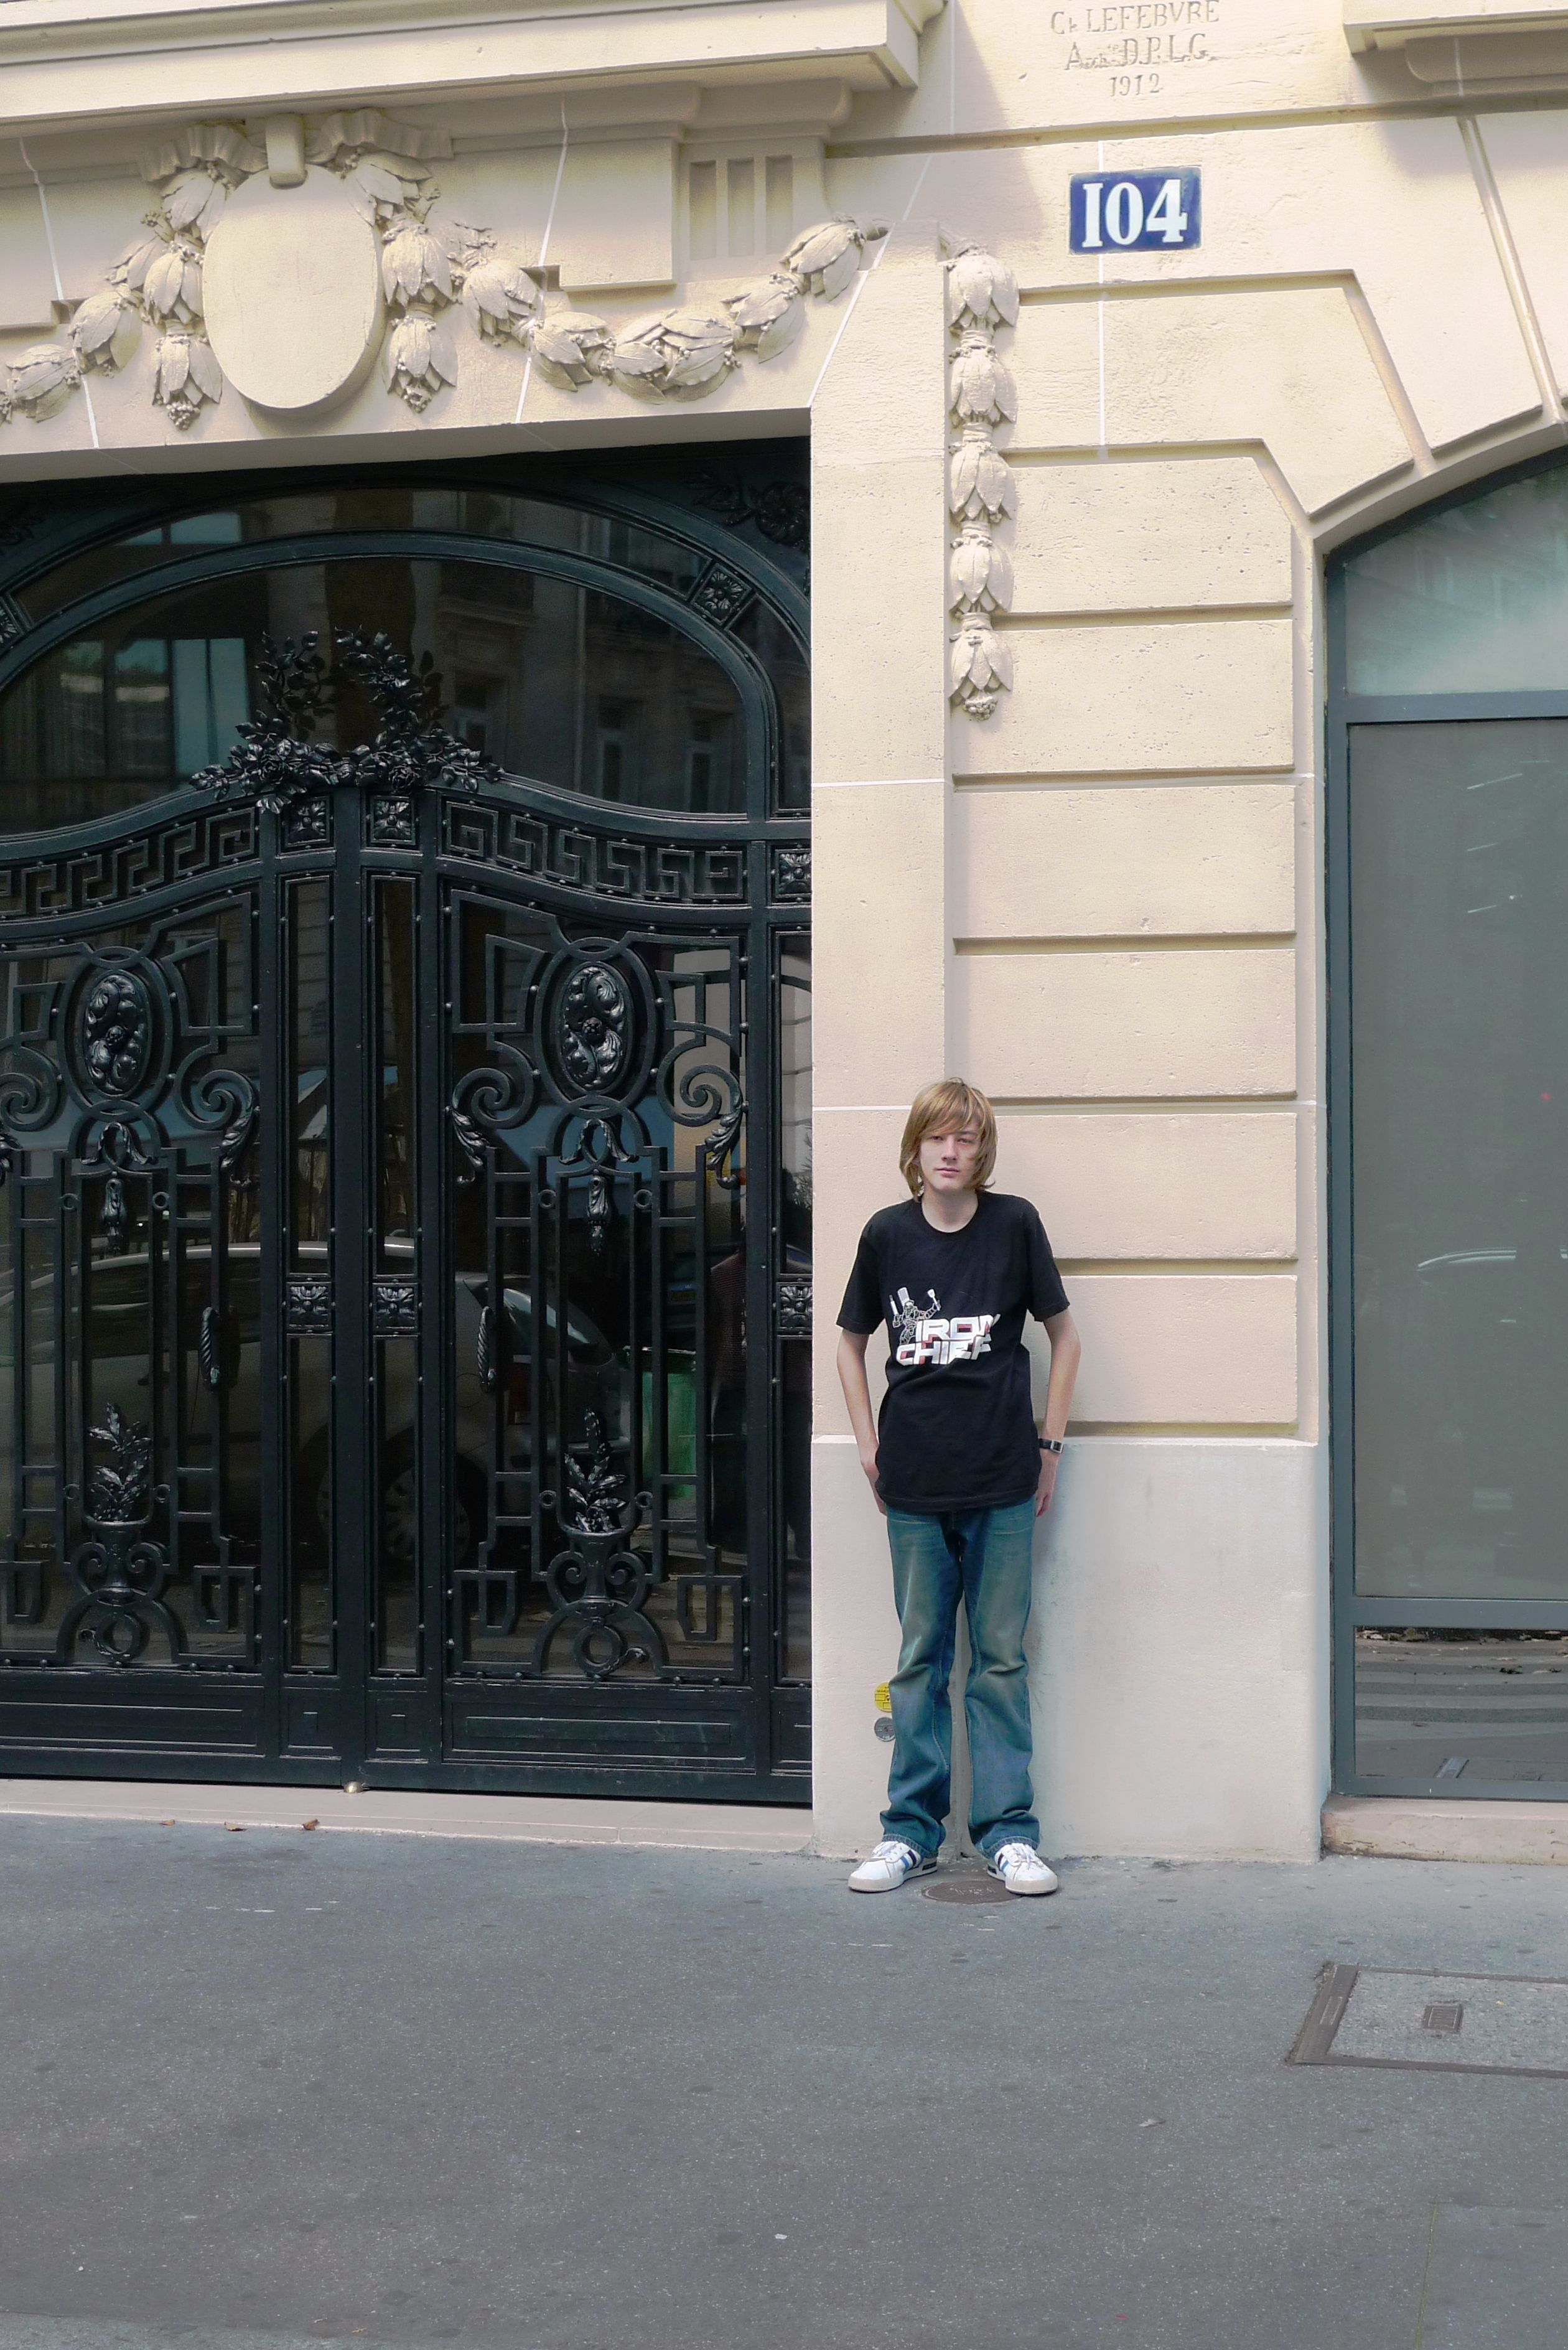 Jason Bourne S Apartment Door 104 Avenue Kléber Paris Ideny